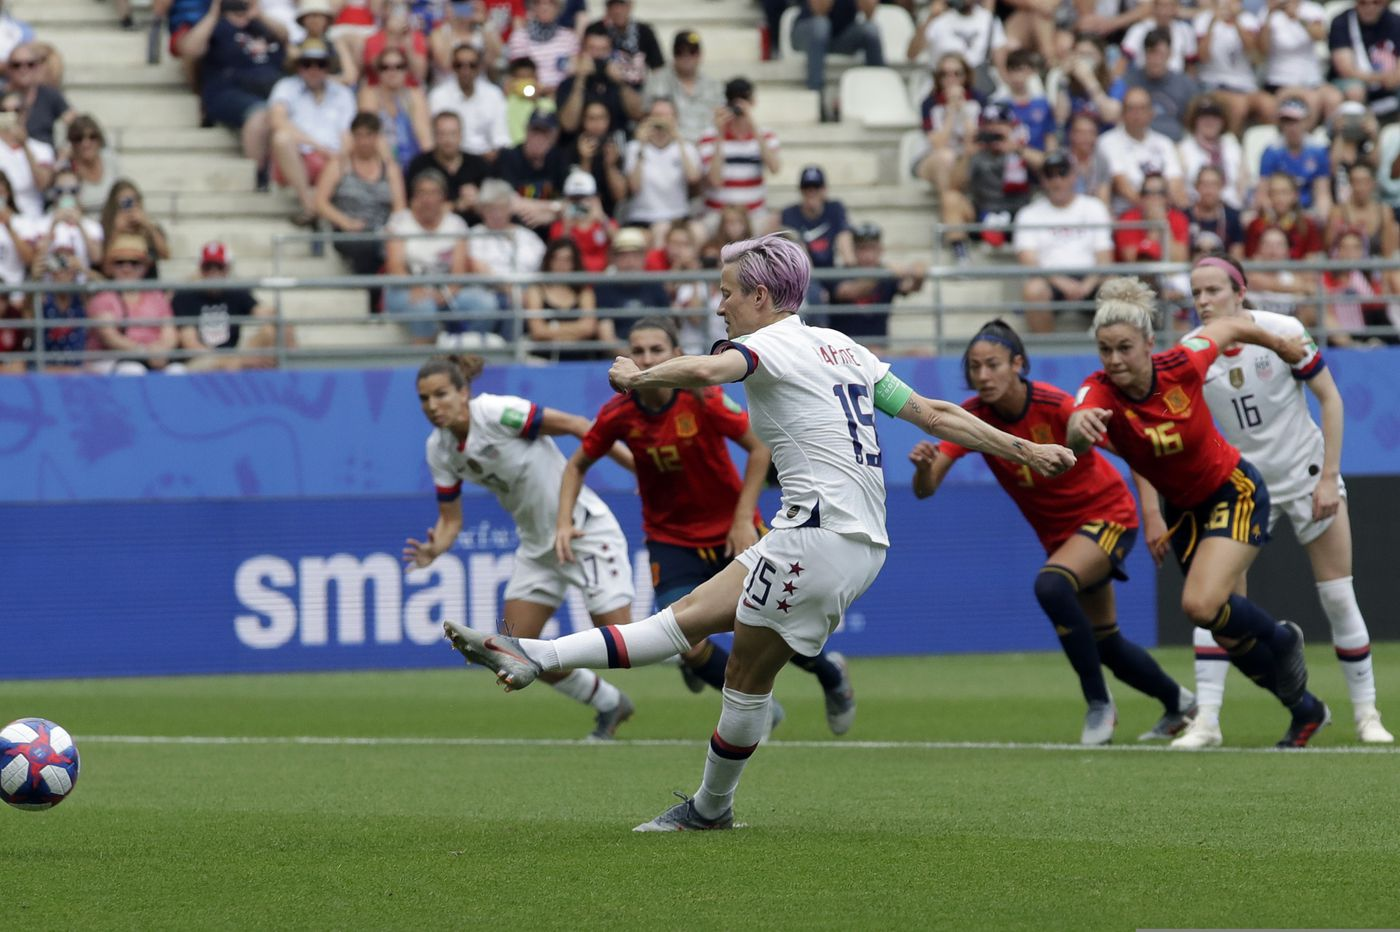 US advances to World Cup quarterfinals with 2-1 win over Spain